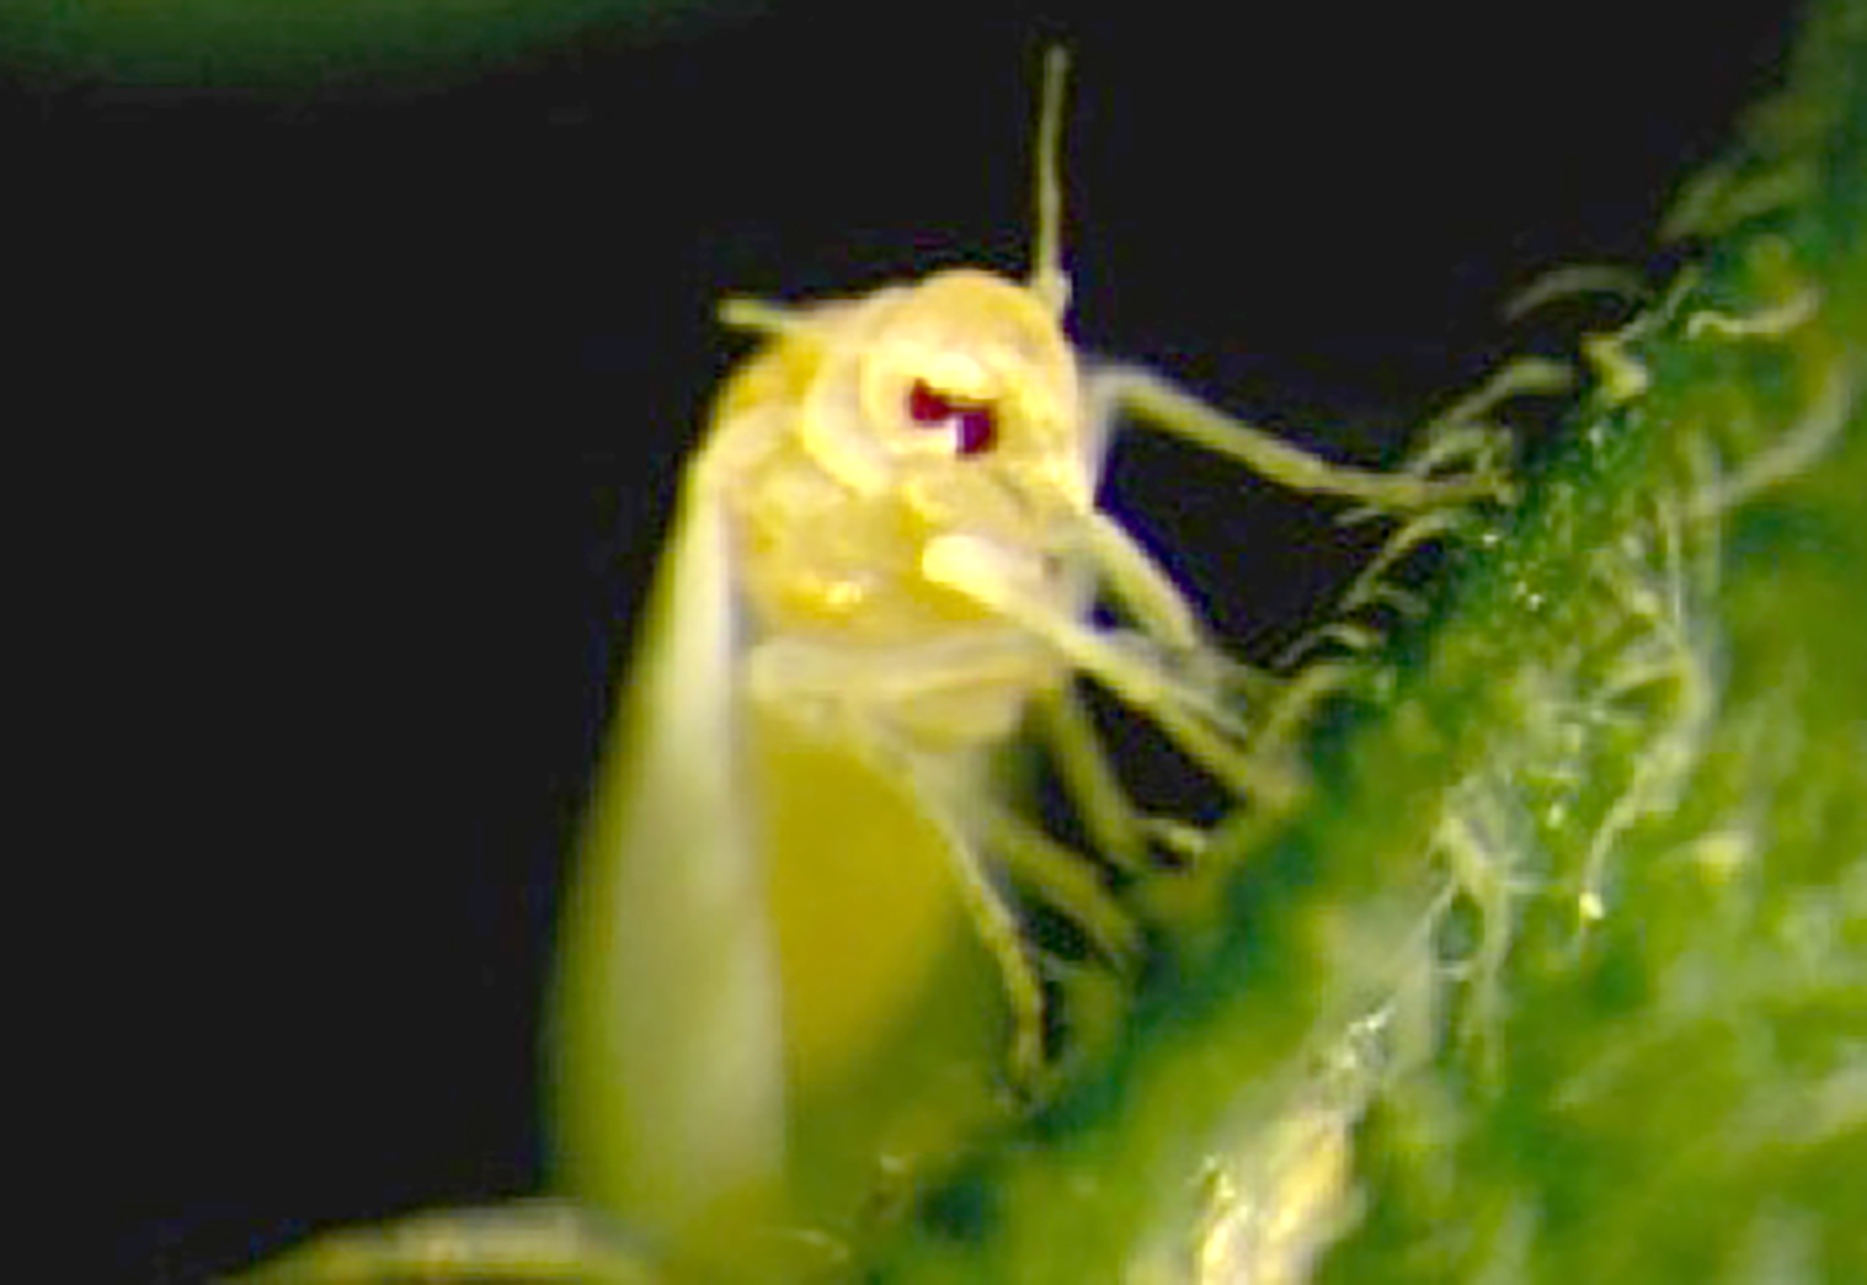 Pictured is an adult whitefly feeding on a tomato leaf. Picture taken by Saioa Legarrea/UGA.